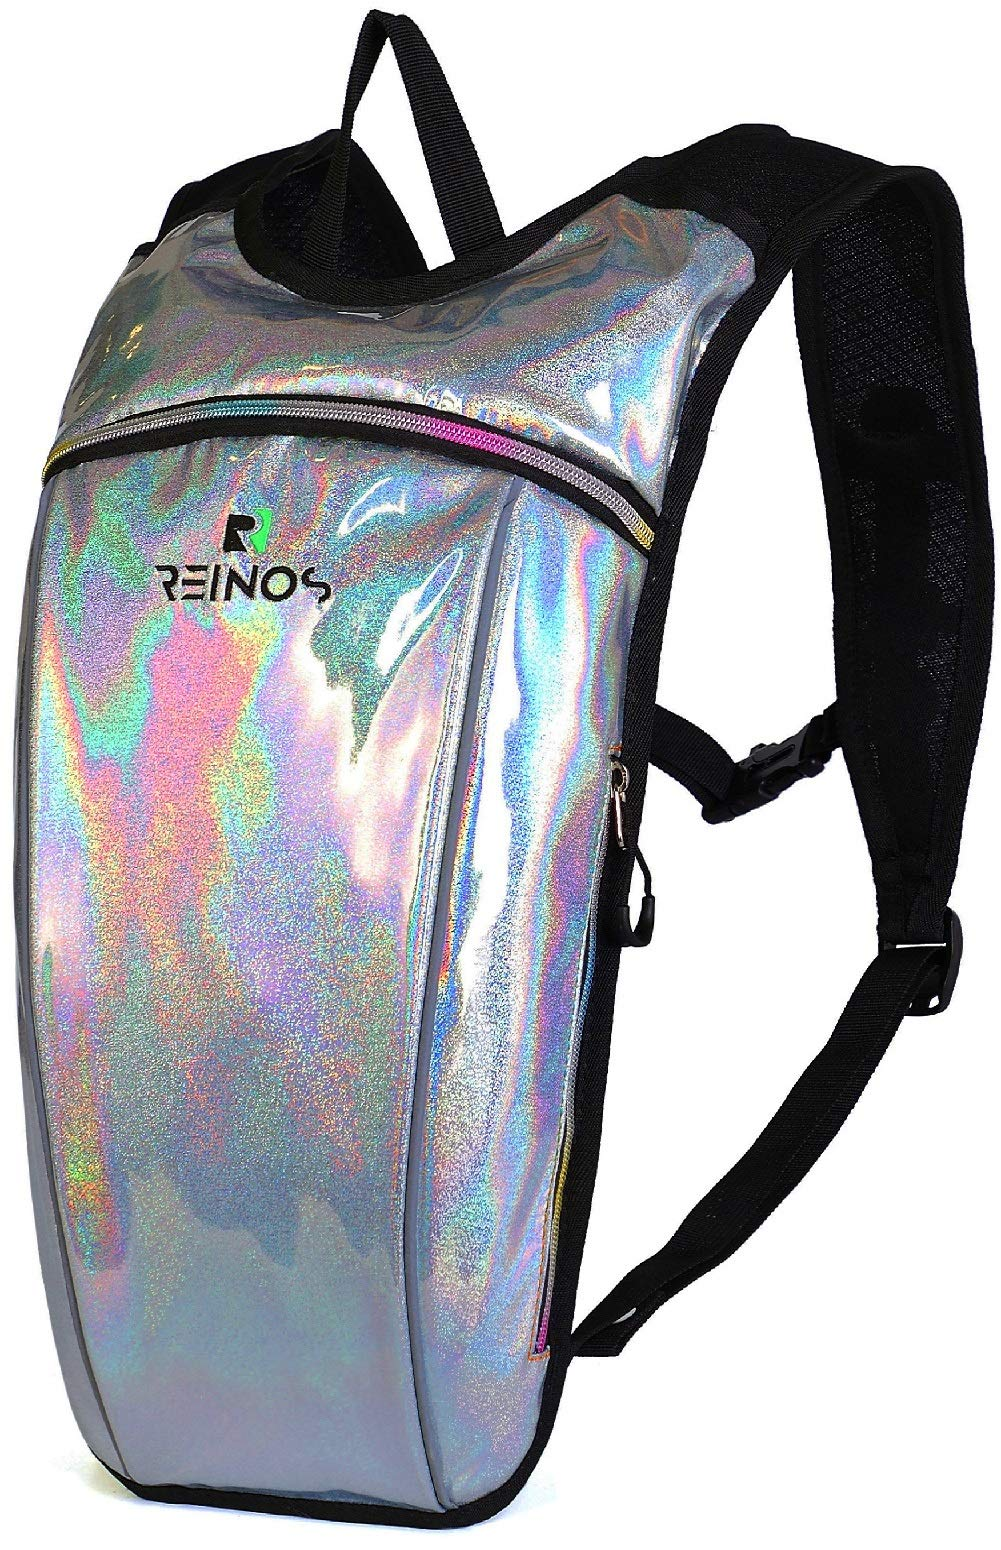 REINOS Hydration Backpack - Light Water Pack - 2L Water Bladder Included for Running, Hiking, Biking, Festivals, Raves (Snow)